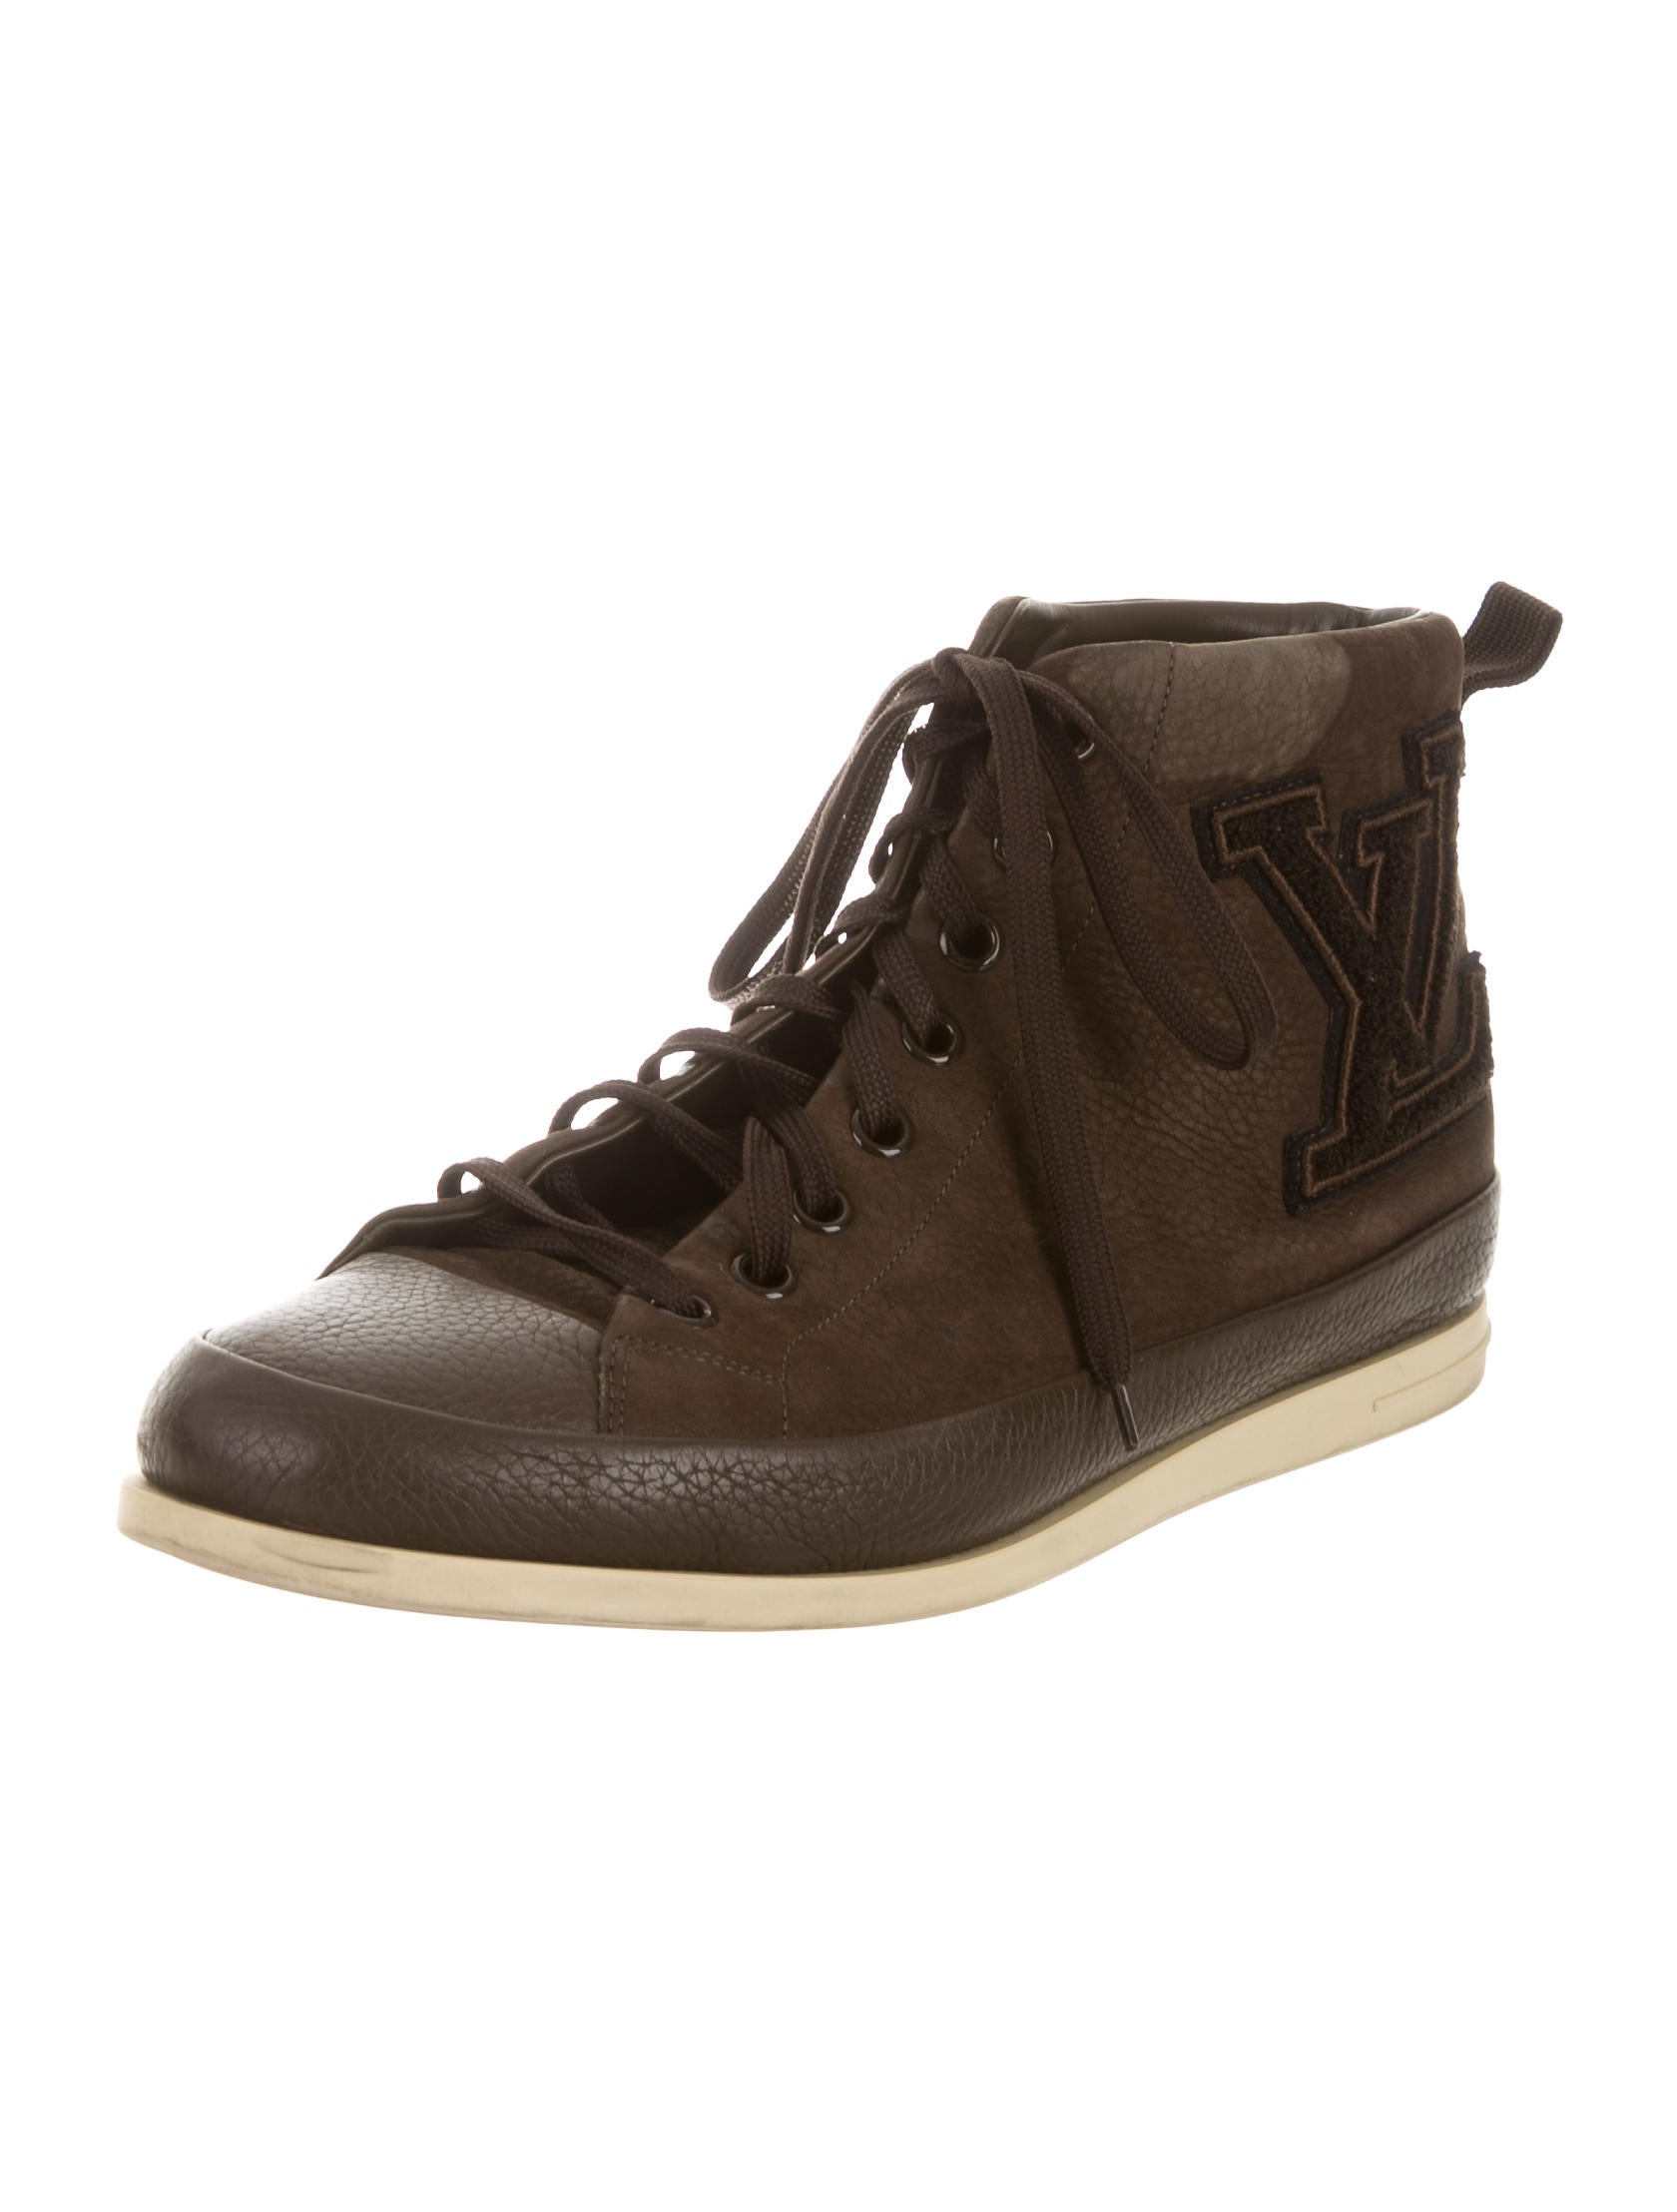 Louis Vuitton Leather High-Top Sneakers - Shoes - LOU91304 ...